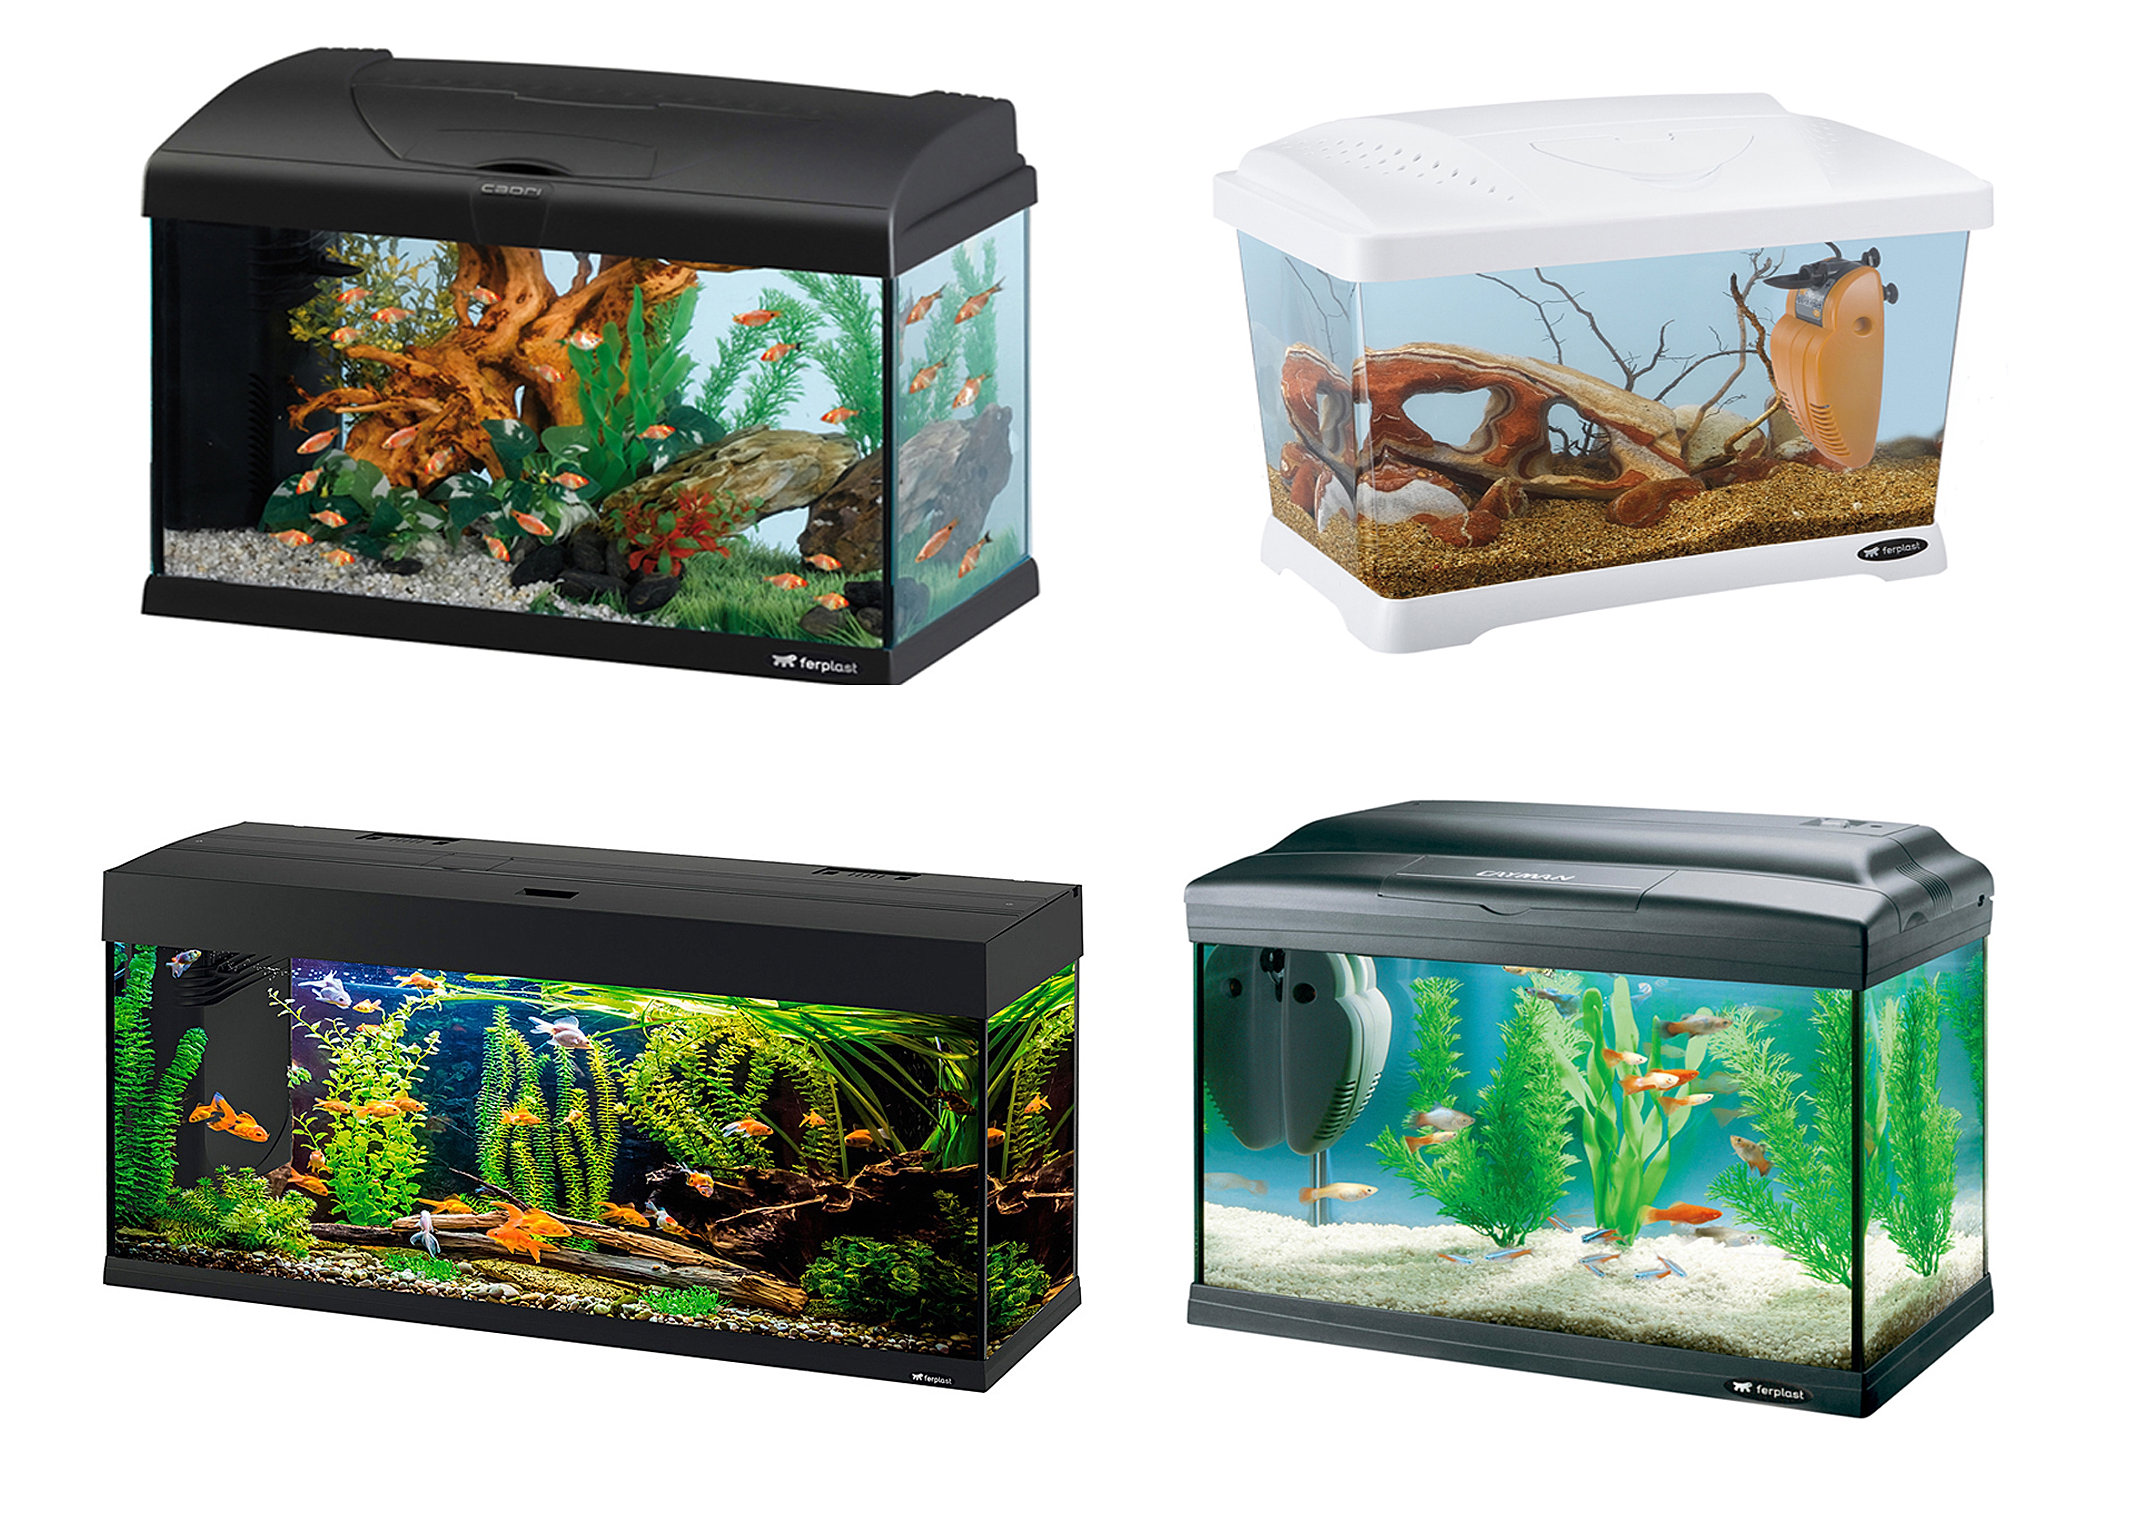 Freshwater Aquarium Fish In Dubai - Ferplast aqurium